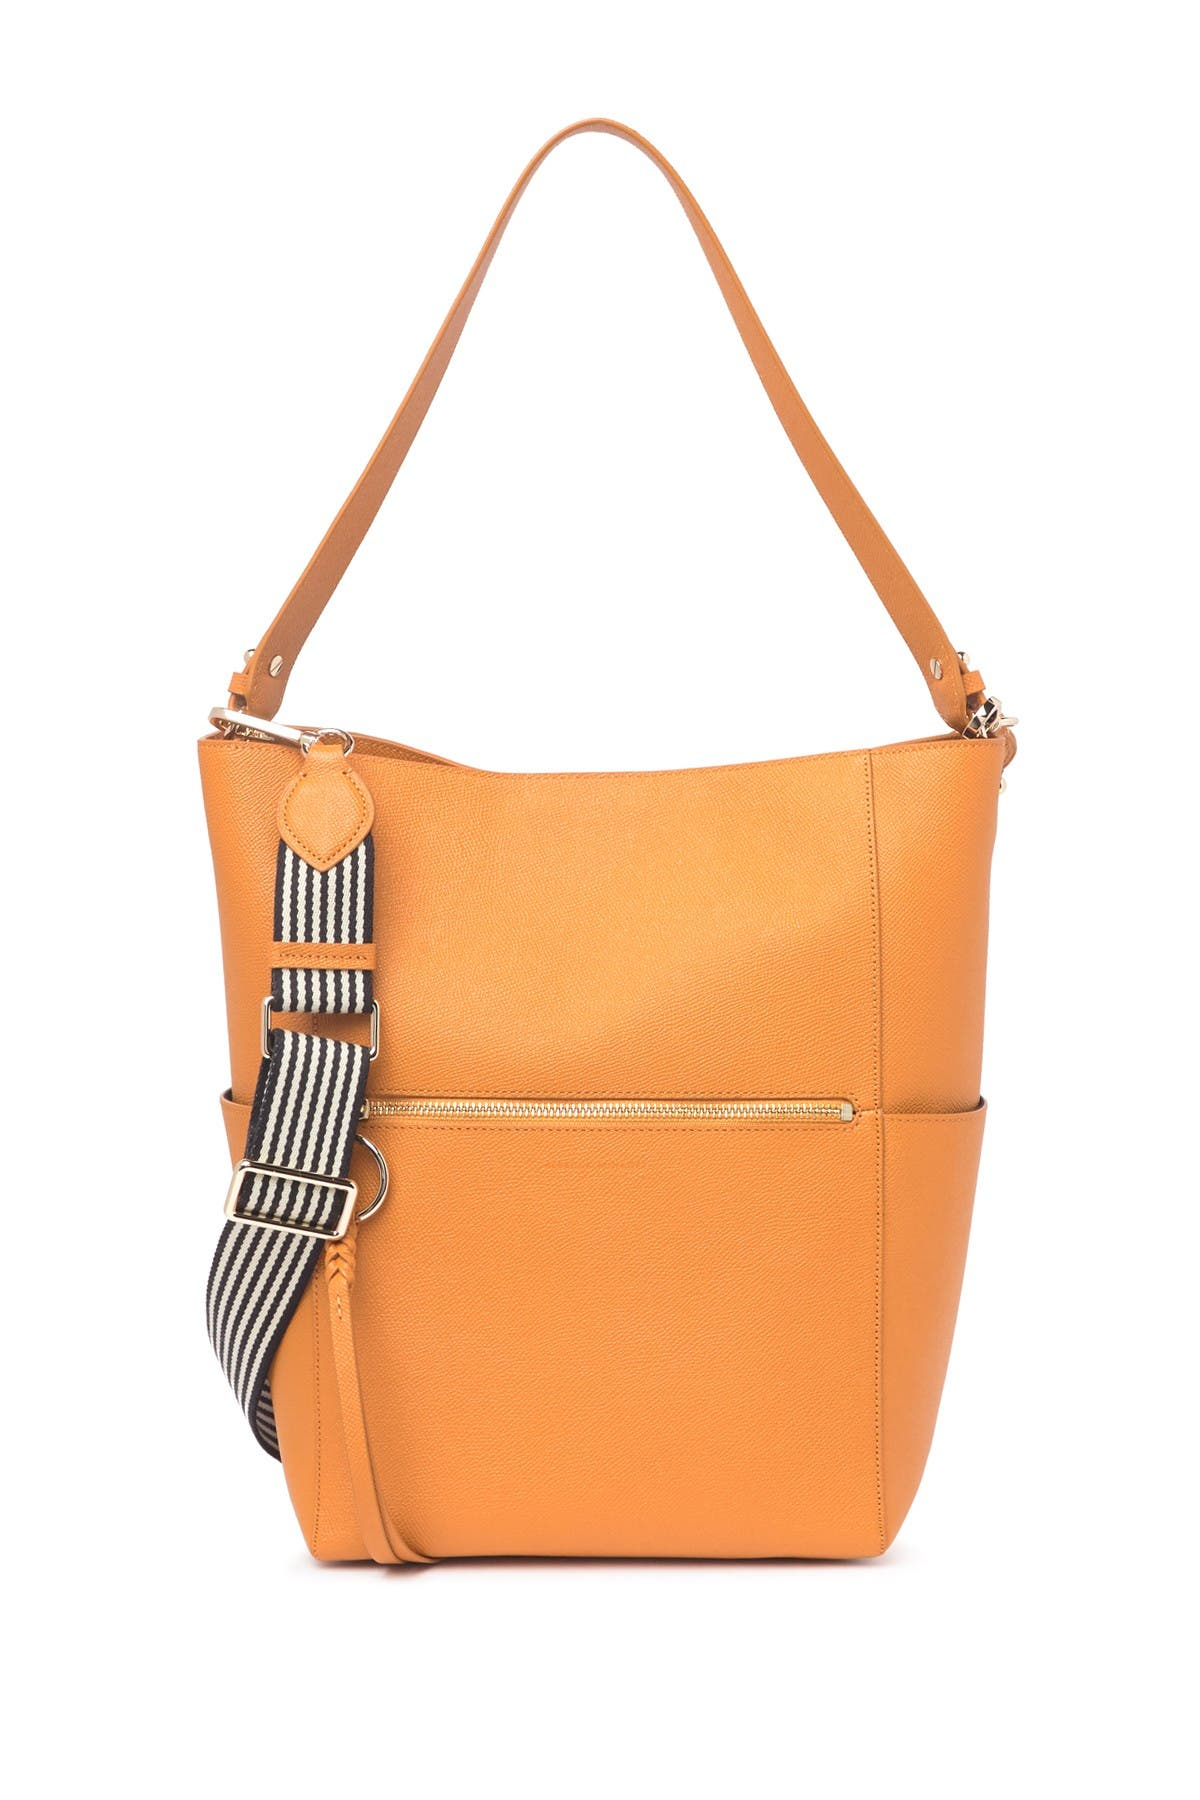 Image of Rebecca Minkoff Gabby Hobo Bag with Webbing Strap